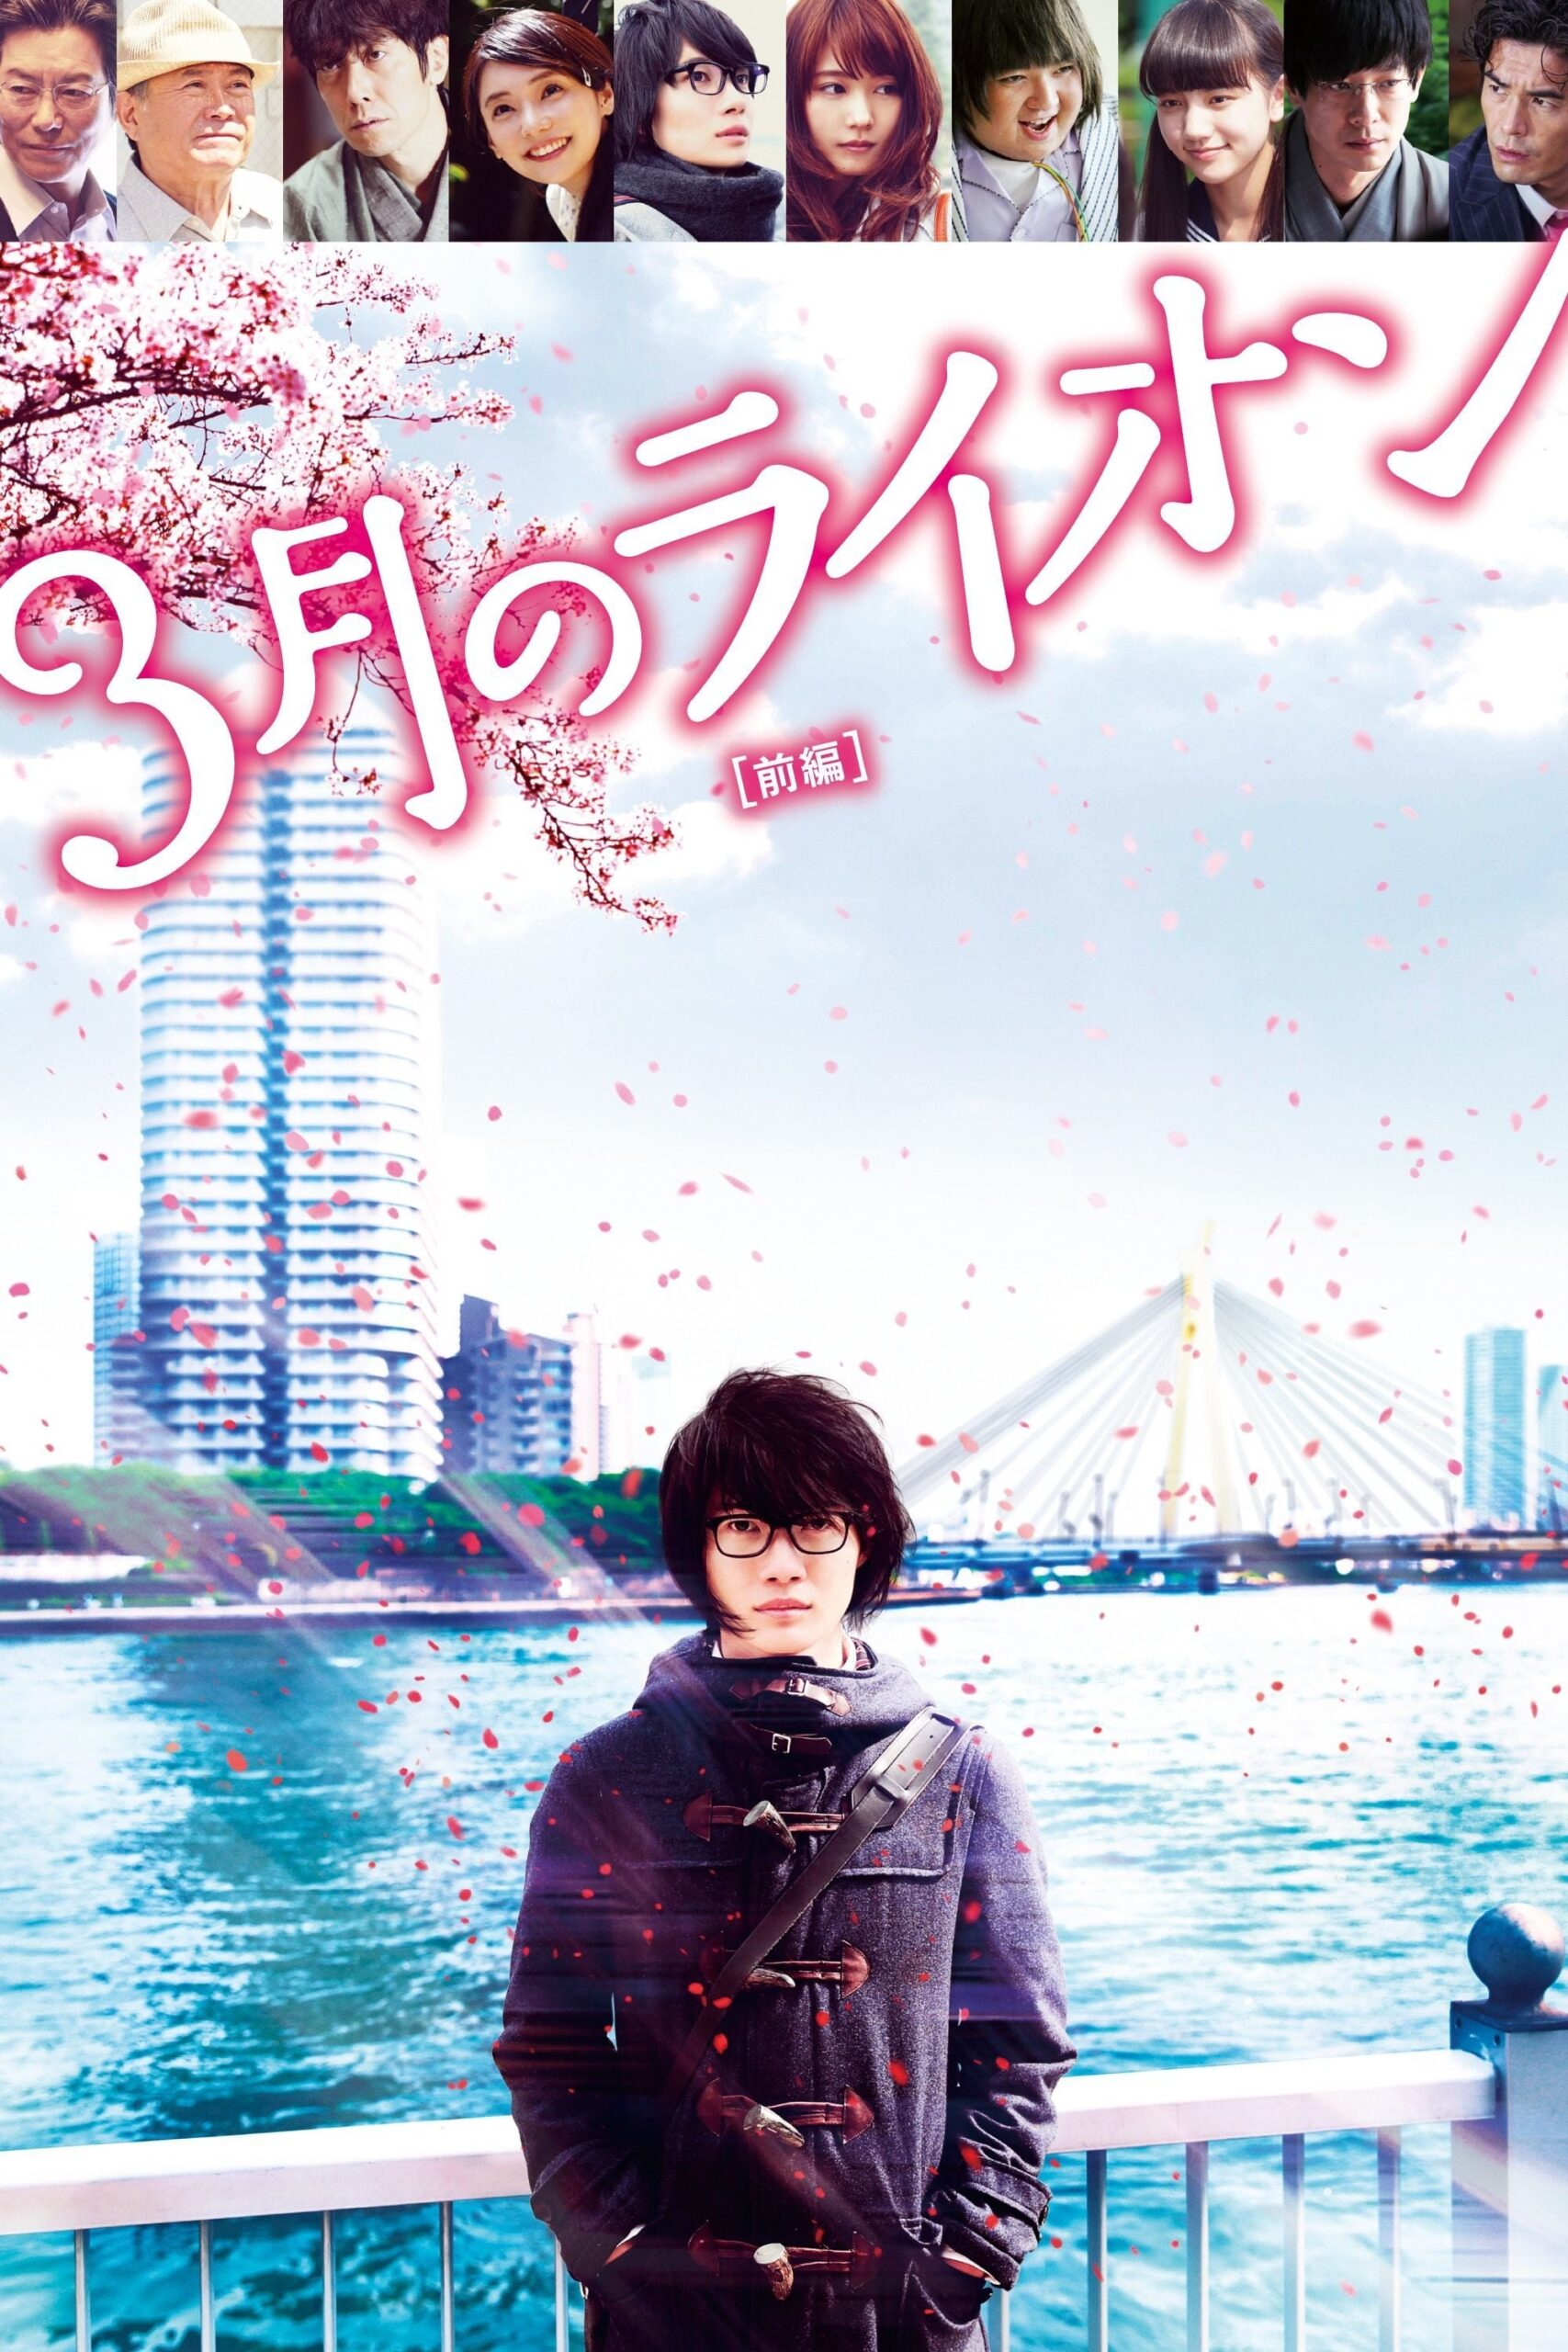 March Comes in Like a Lion Movie Streaming Online